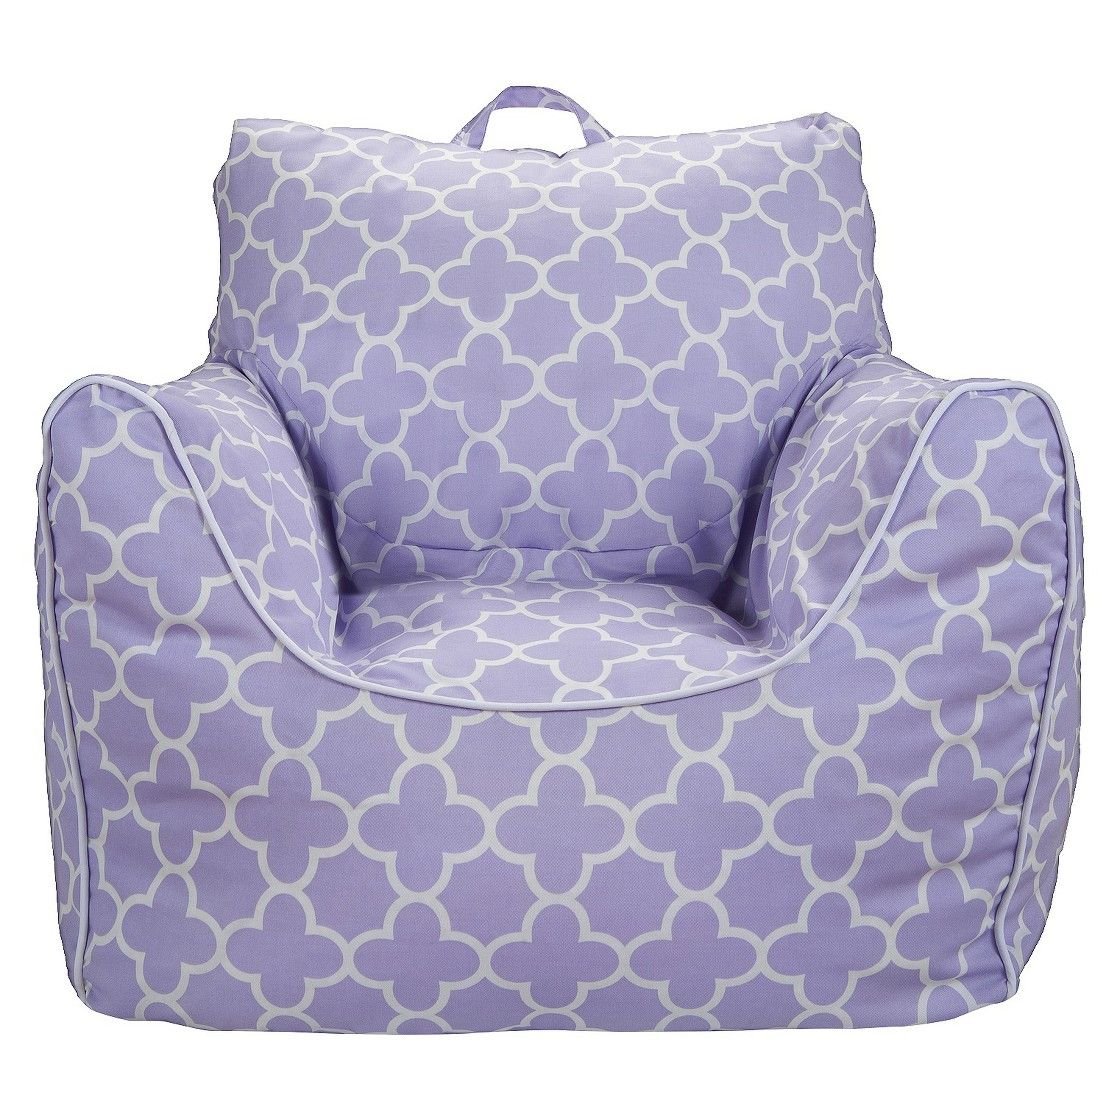 Circo Bean Bag Chair Lavender Quatrefoil With Removable